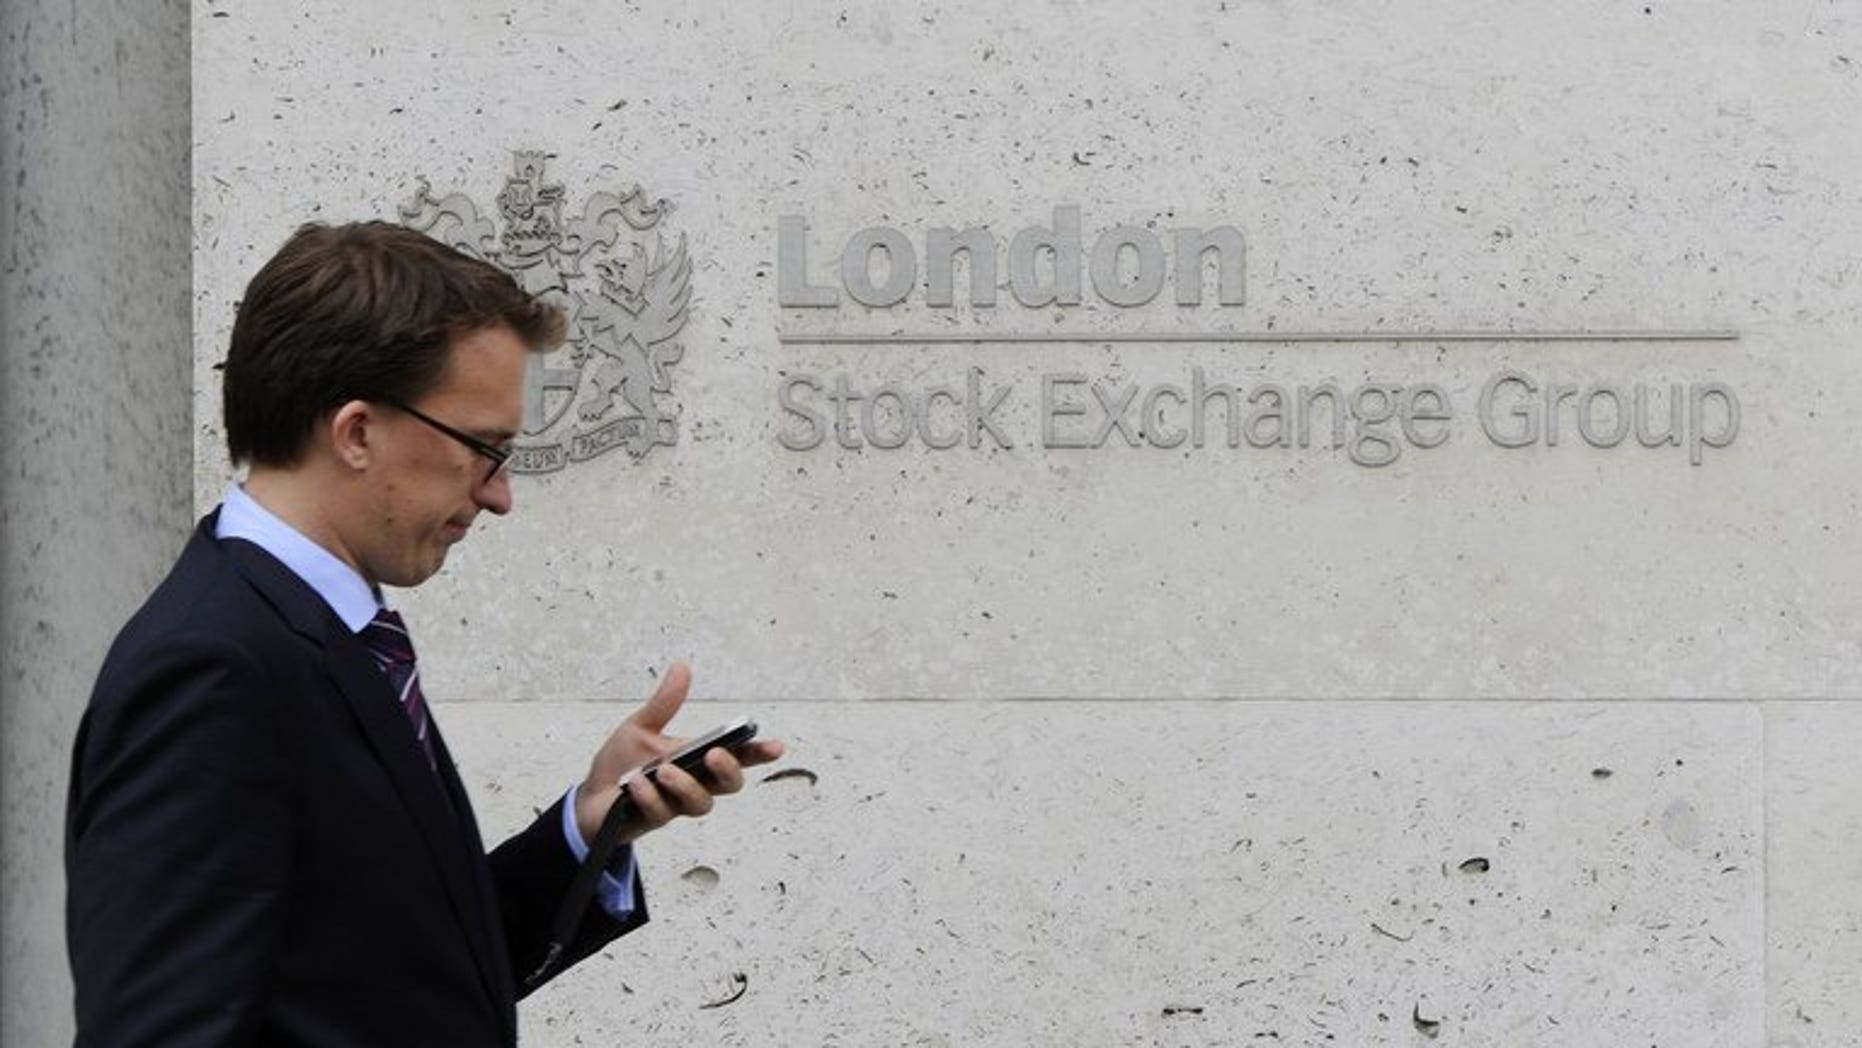 A man walks past the London Stock Exchange. London shares have rebounded after the recent slump sparked by concern over a Chinese credit crunch and the withdrawal of US economic stimulus, dealers said..